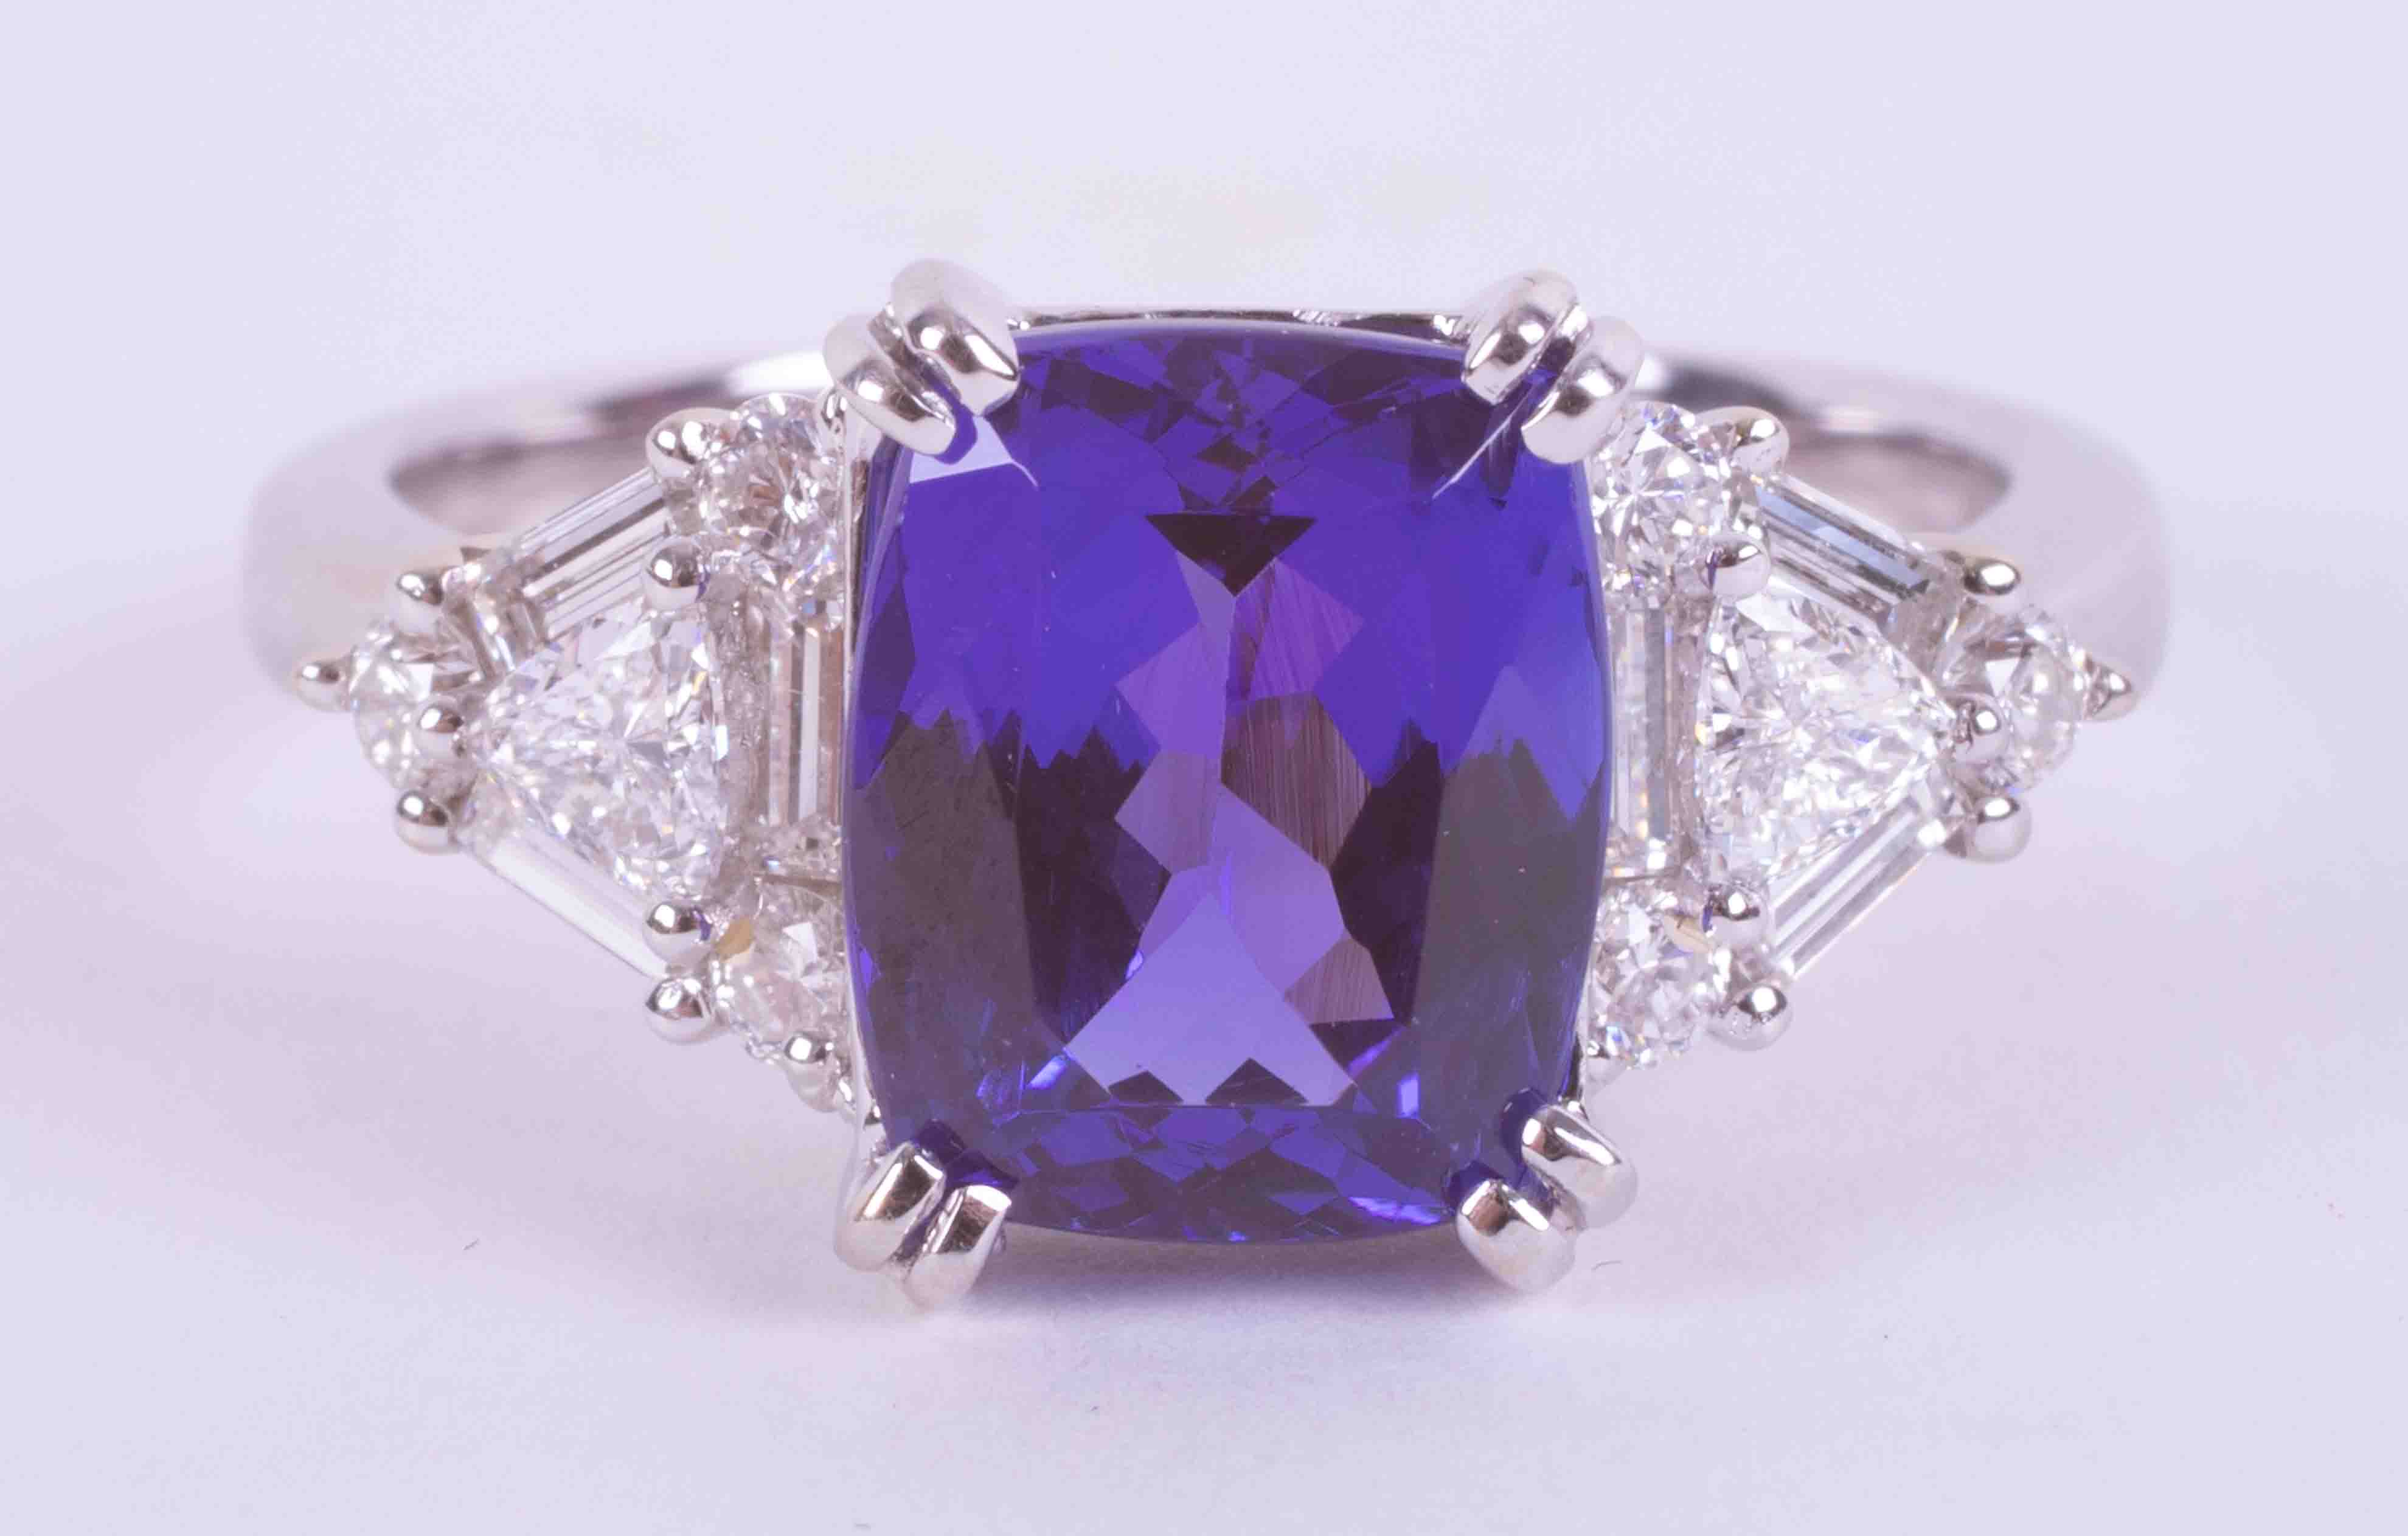 An impressive 18ct white gold ring set with a central cushion cut Tanzanite approx. 3.35 carats, AAA